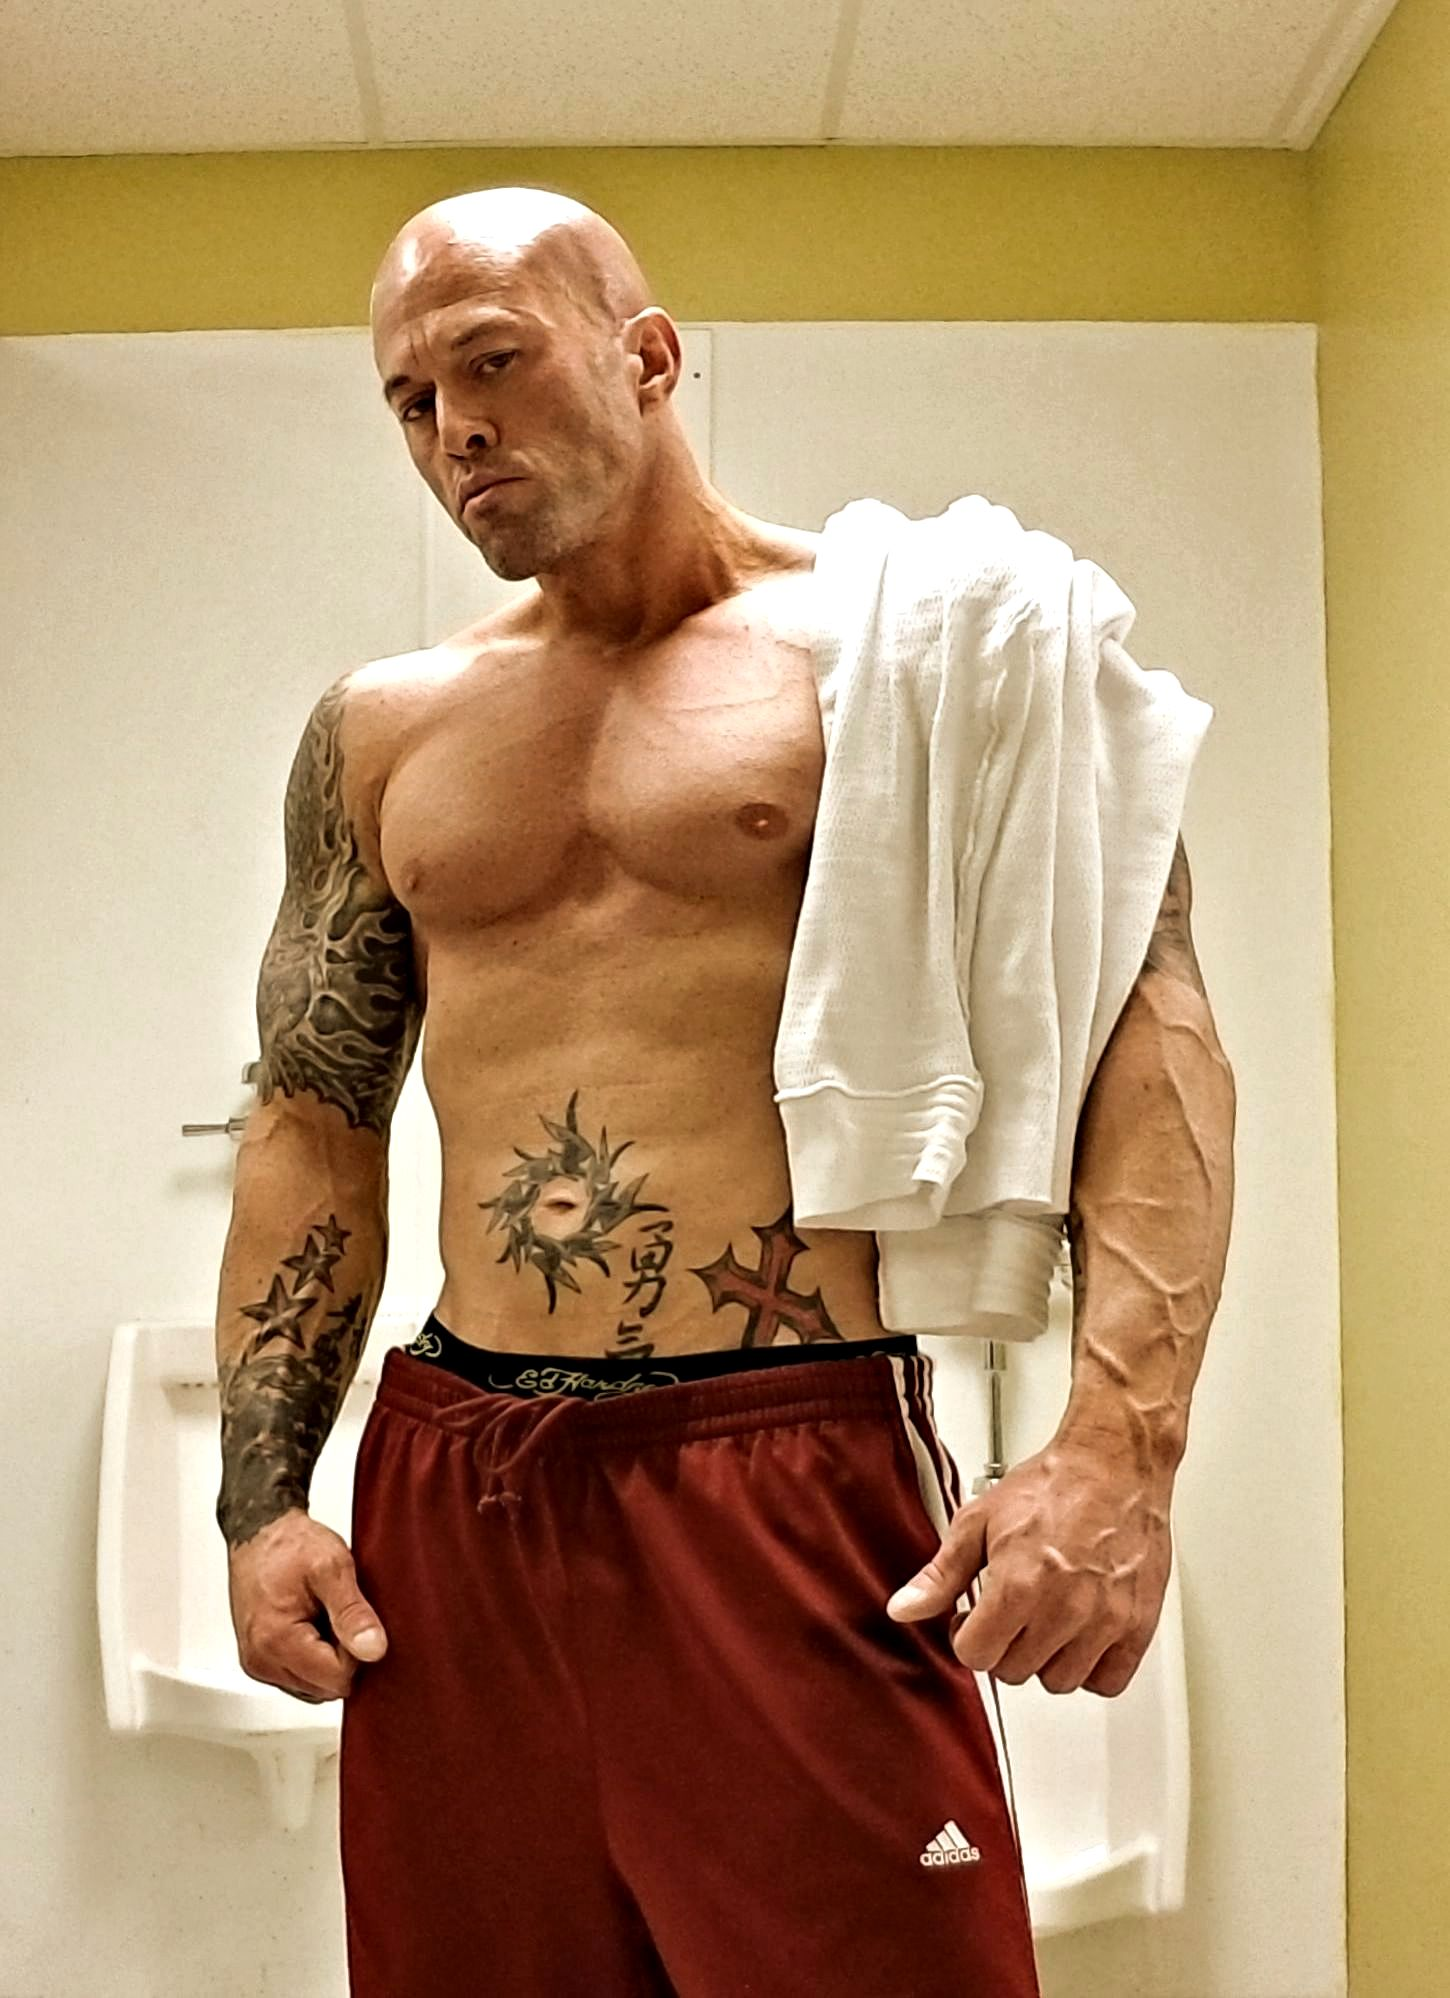 Model & Actor John Quinlan Physique Post Workout 2-8-2018 #JohnQuinlan